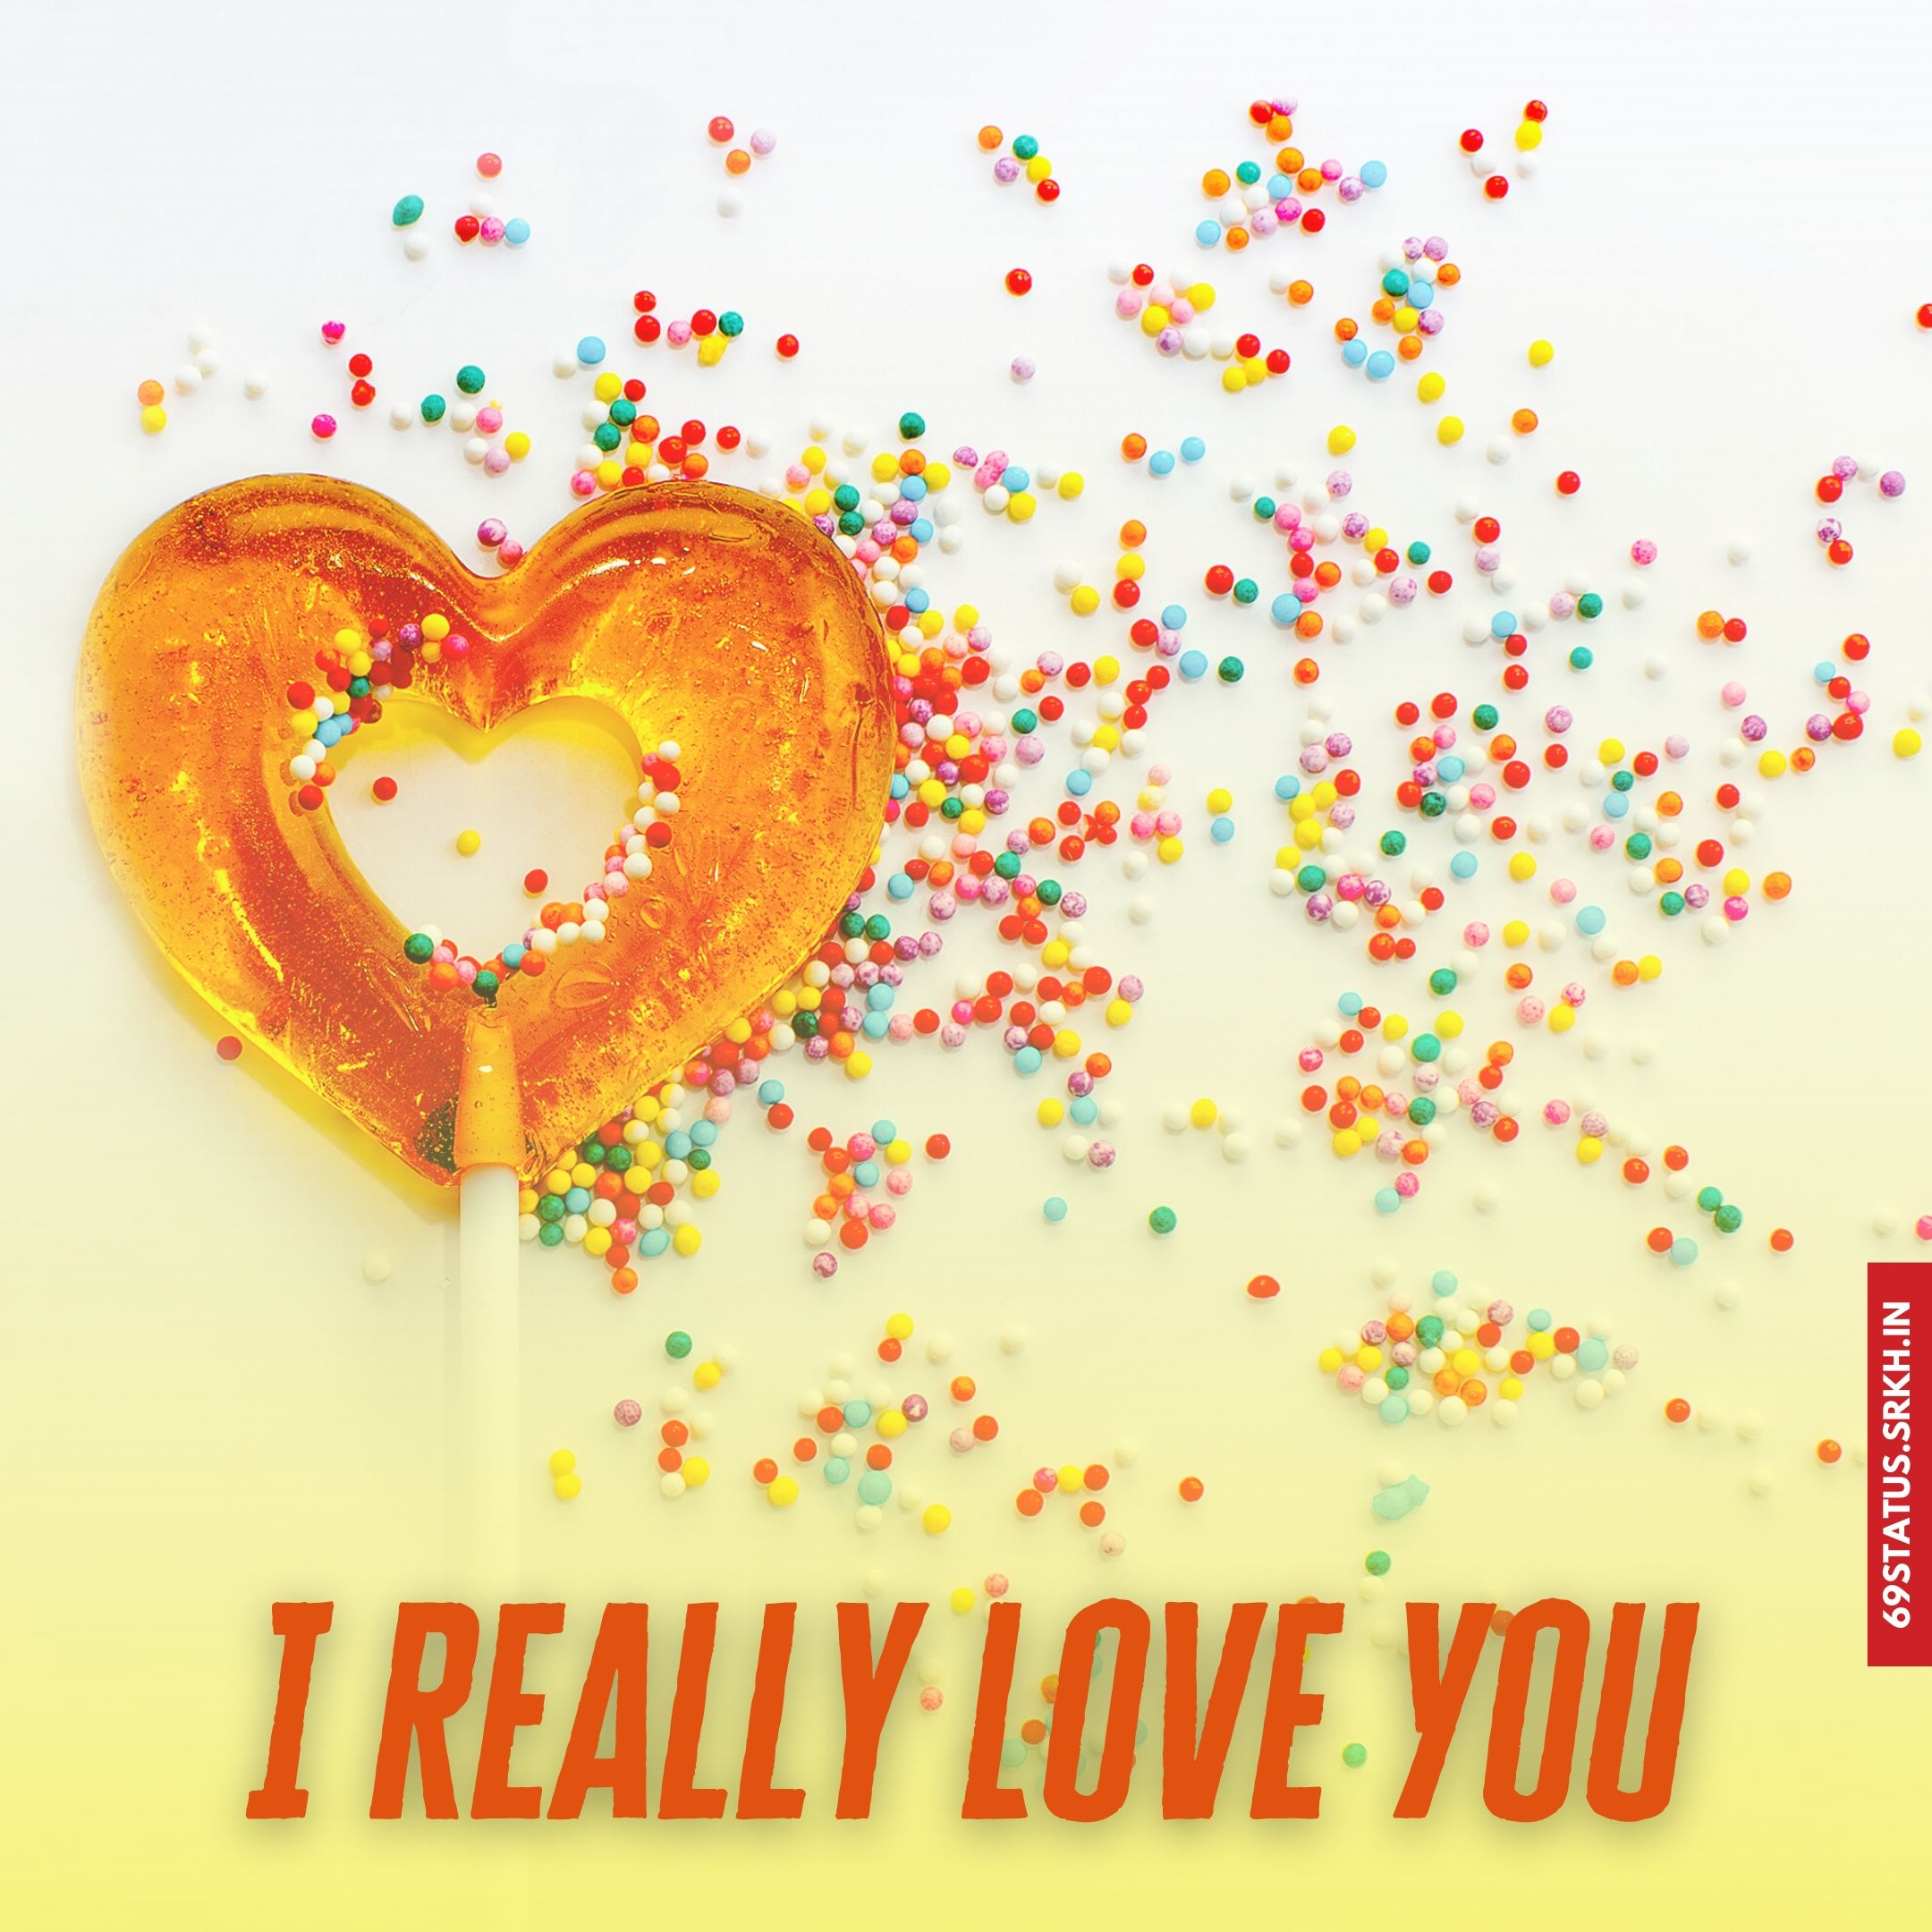 I really love you images full HD free download.